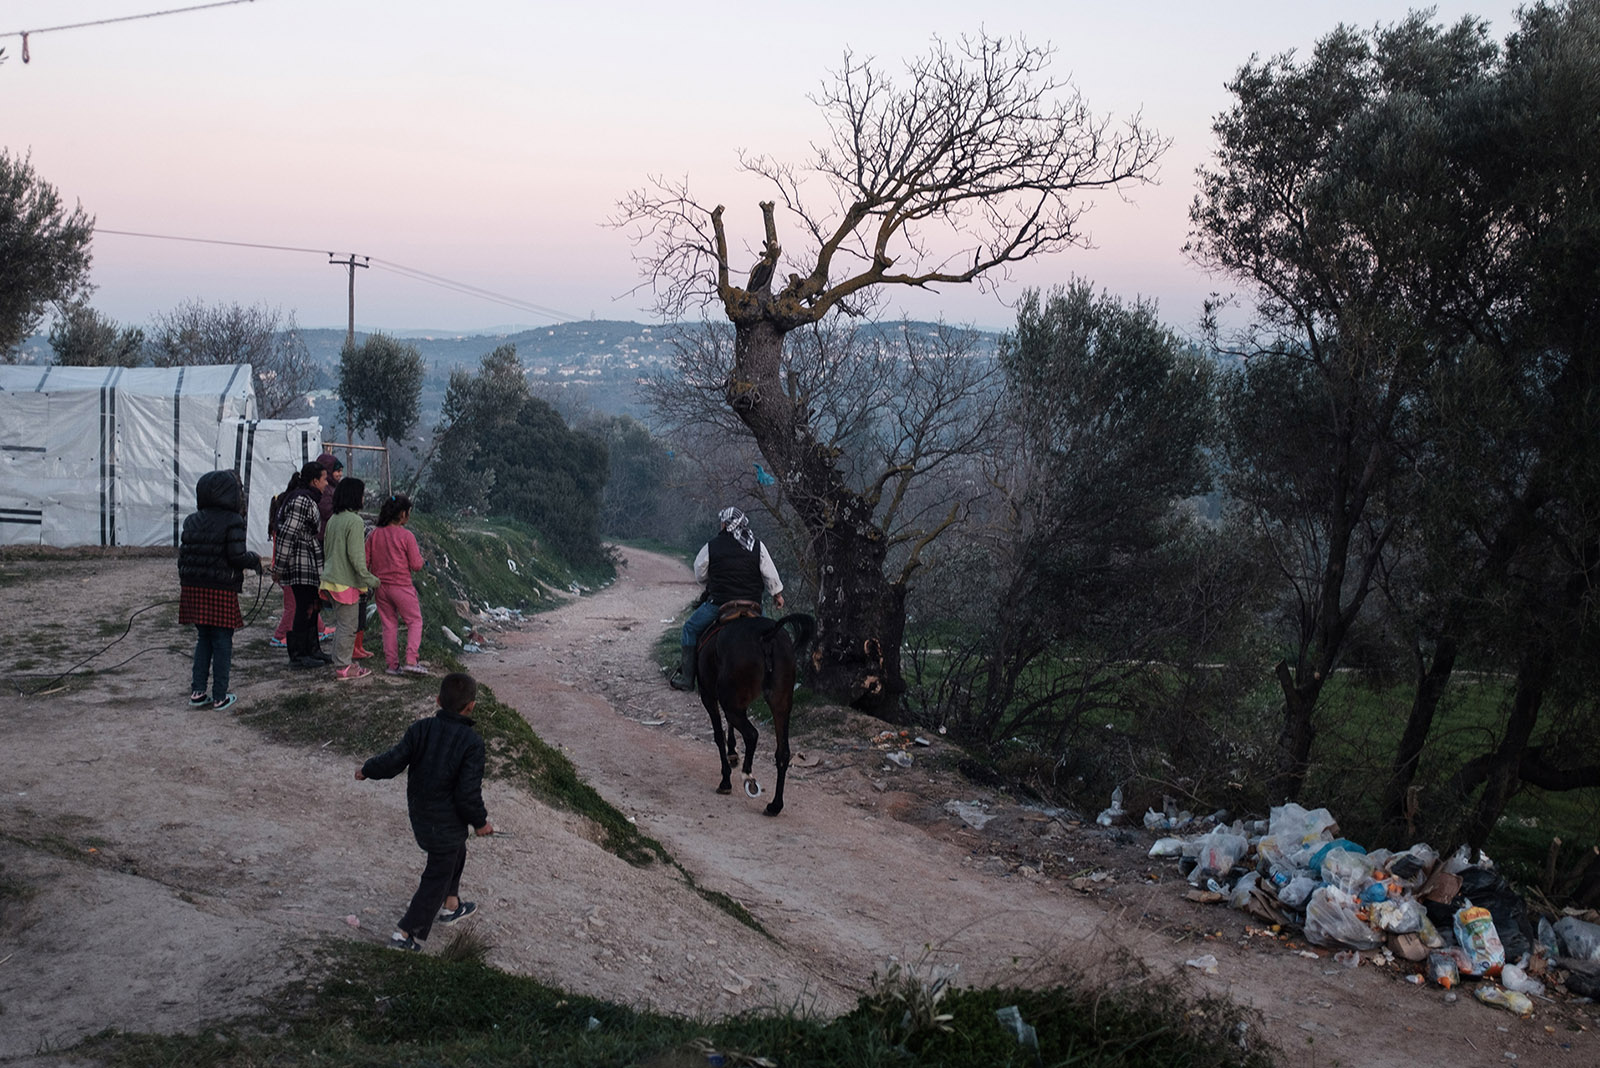 Refugee children and Greek villager on a horse